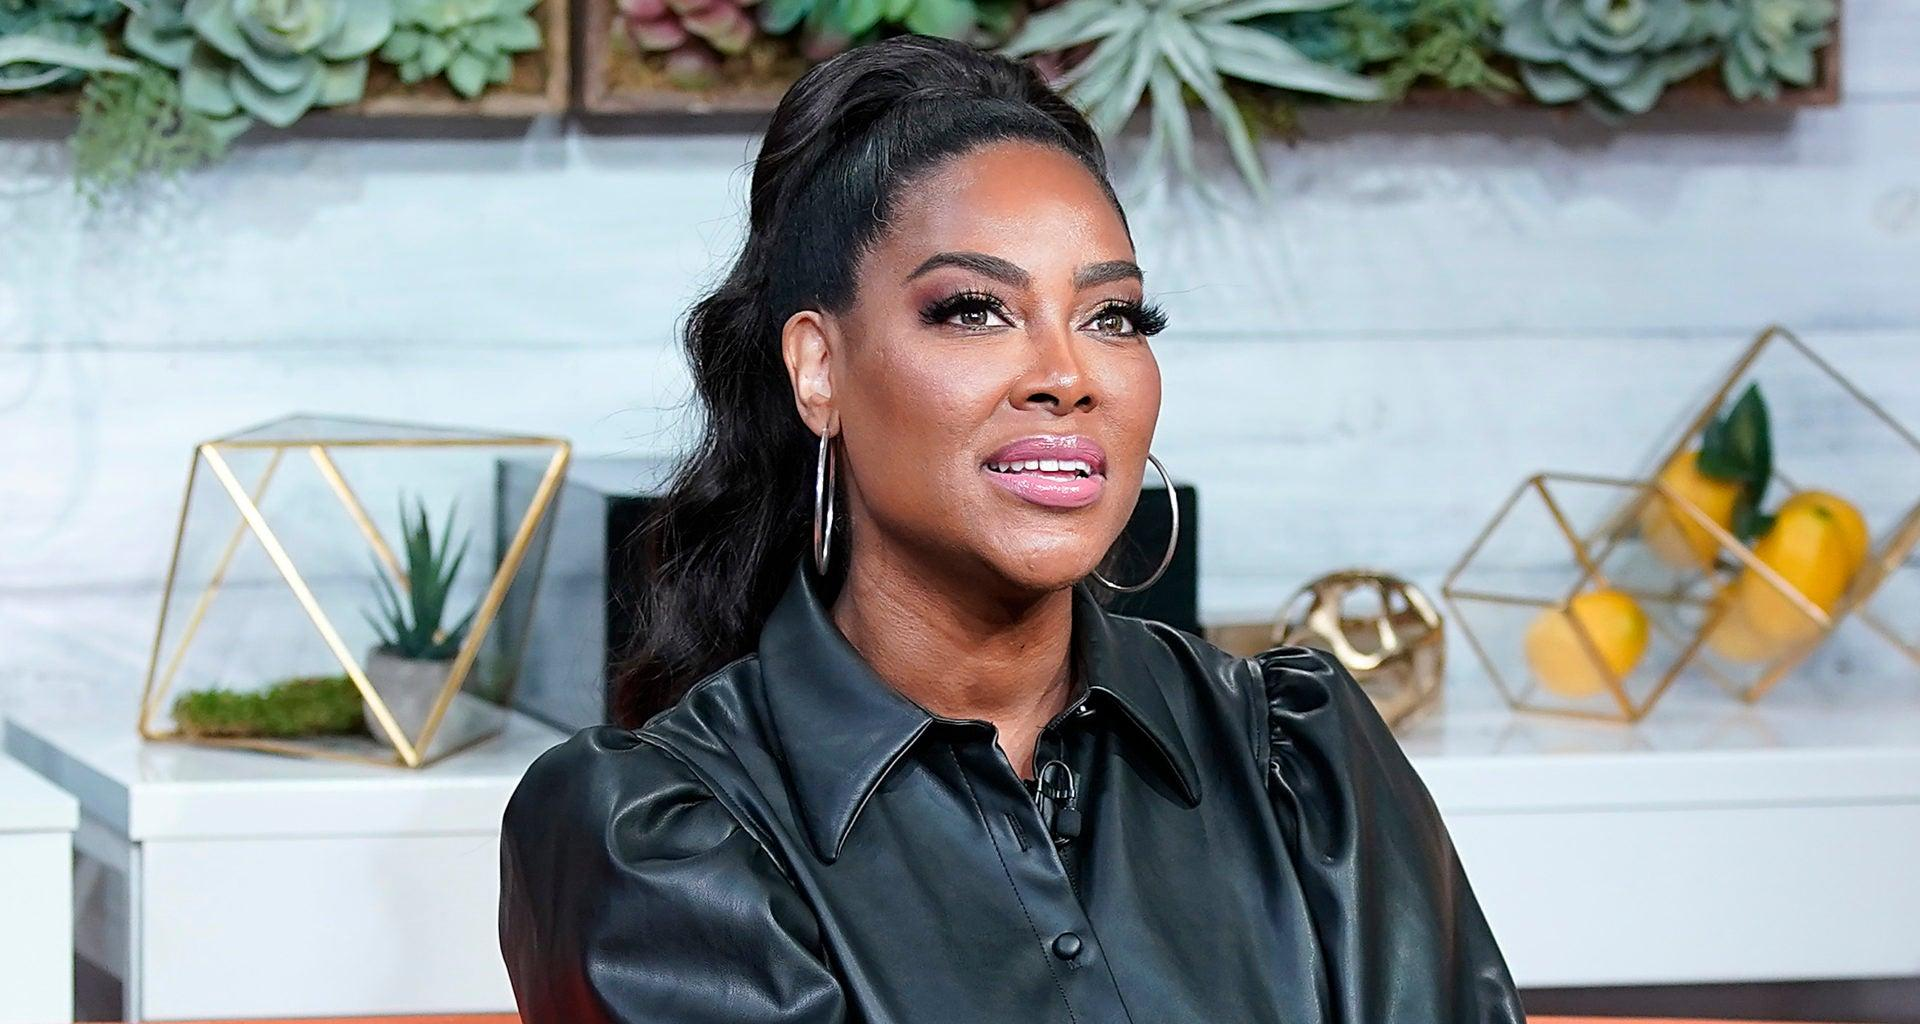 Kenya Moore Shocks Fans With A Throwback Photo Since She Was 13 Years Old - Check Her Out Hanging With Her Brother: 'You Look The Same!'